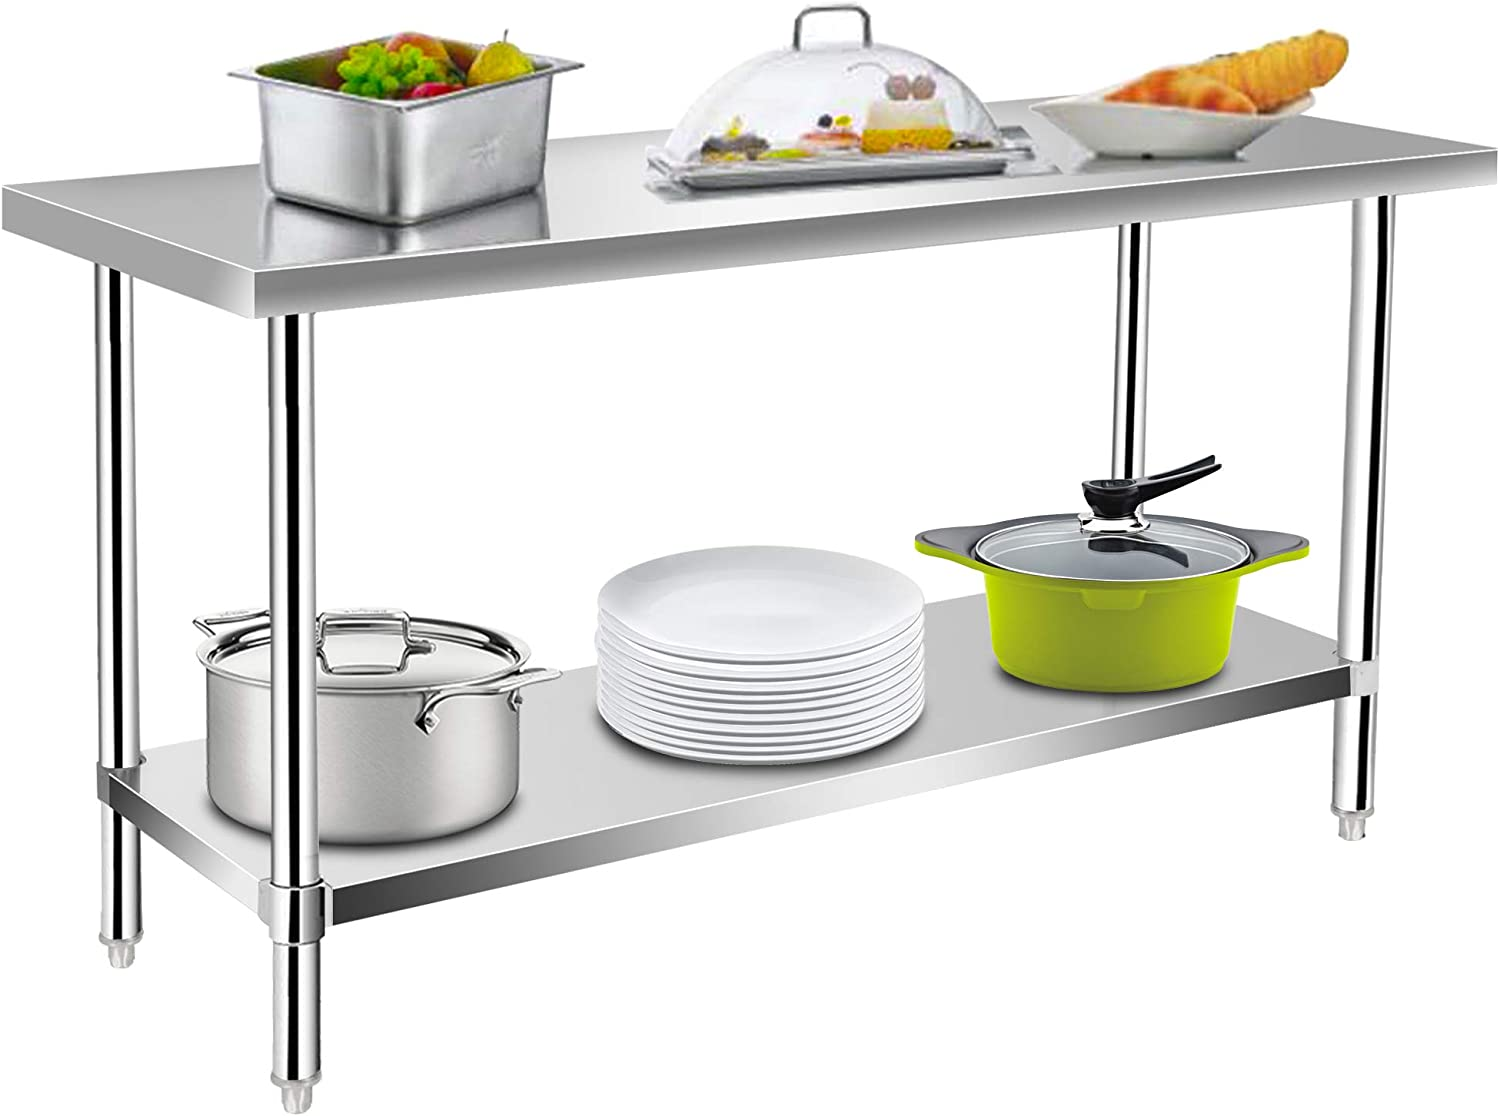 Commercial Kitchen Prep Work Table Beauty products KITMA Steel Food Stainless Selling rankings